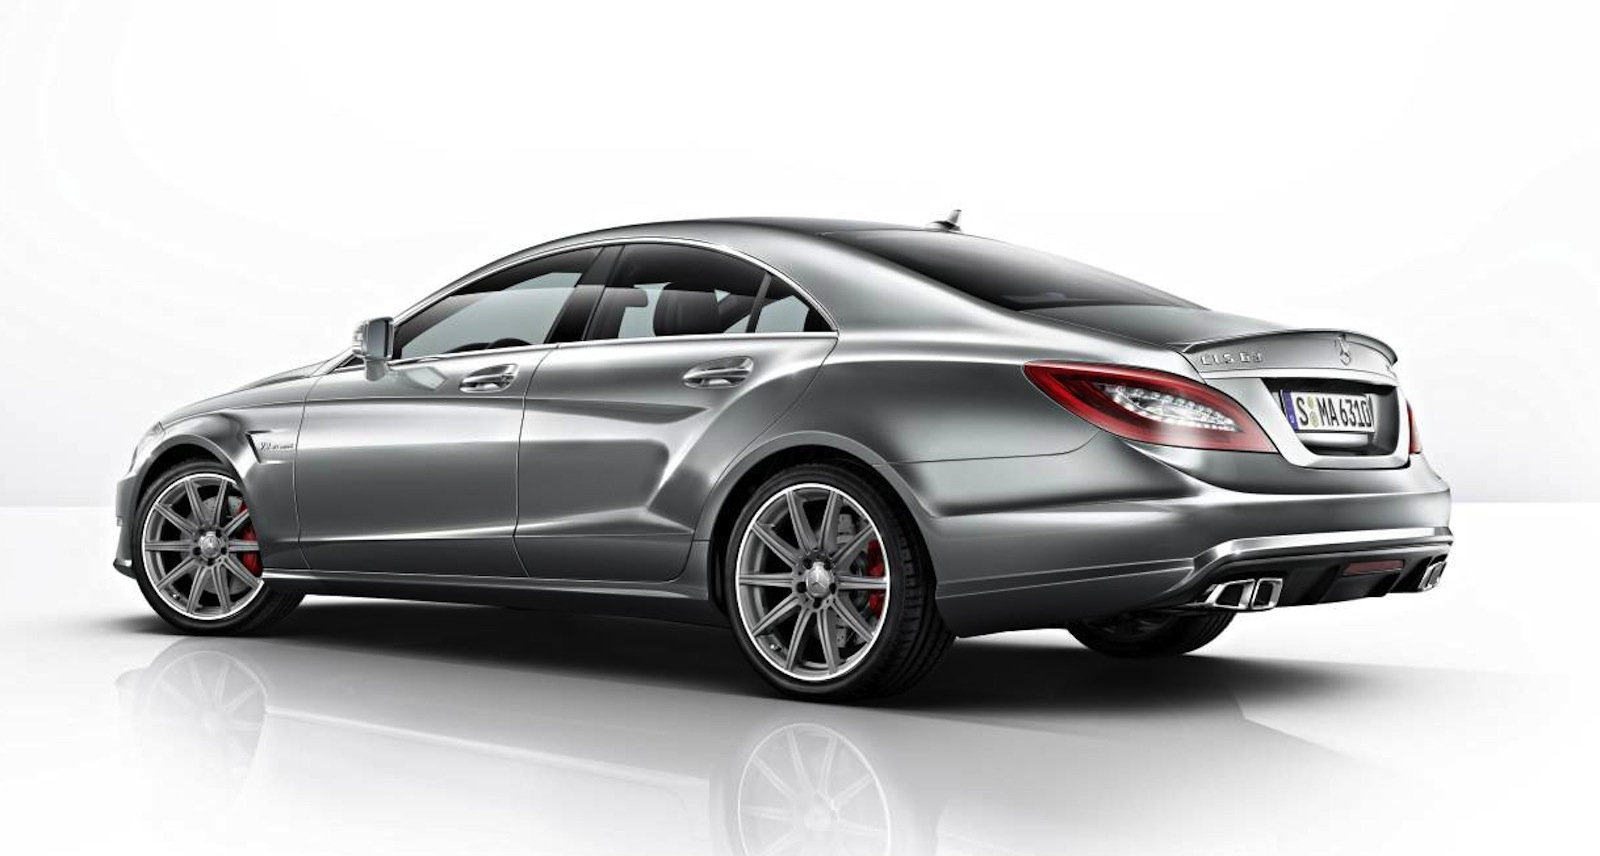 Mercedes benz cls63 amg s pricing and specifications for Mercedes benz cls 63 amg price